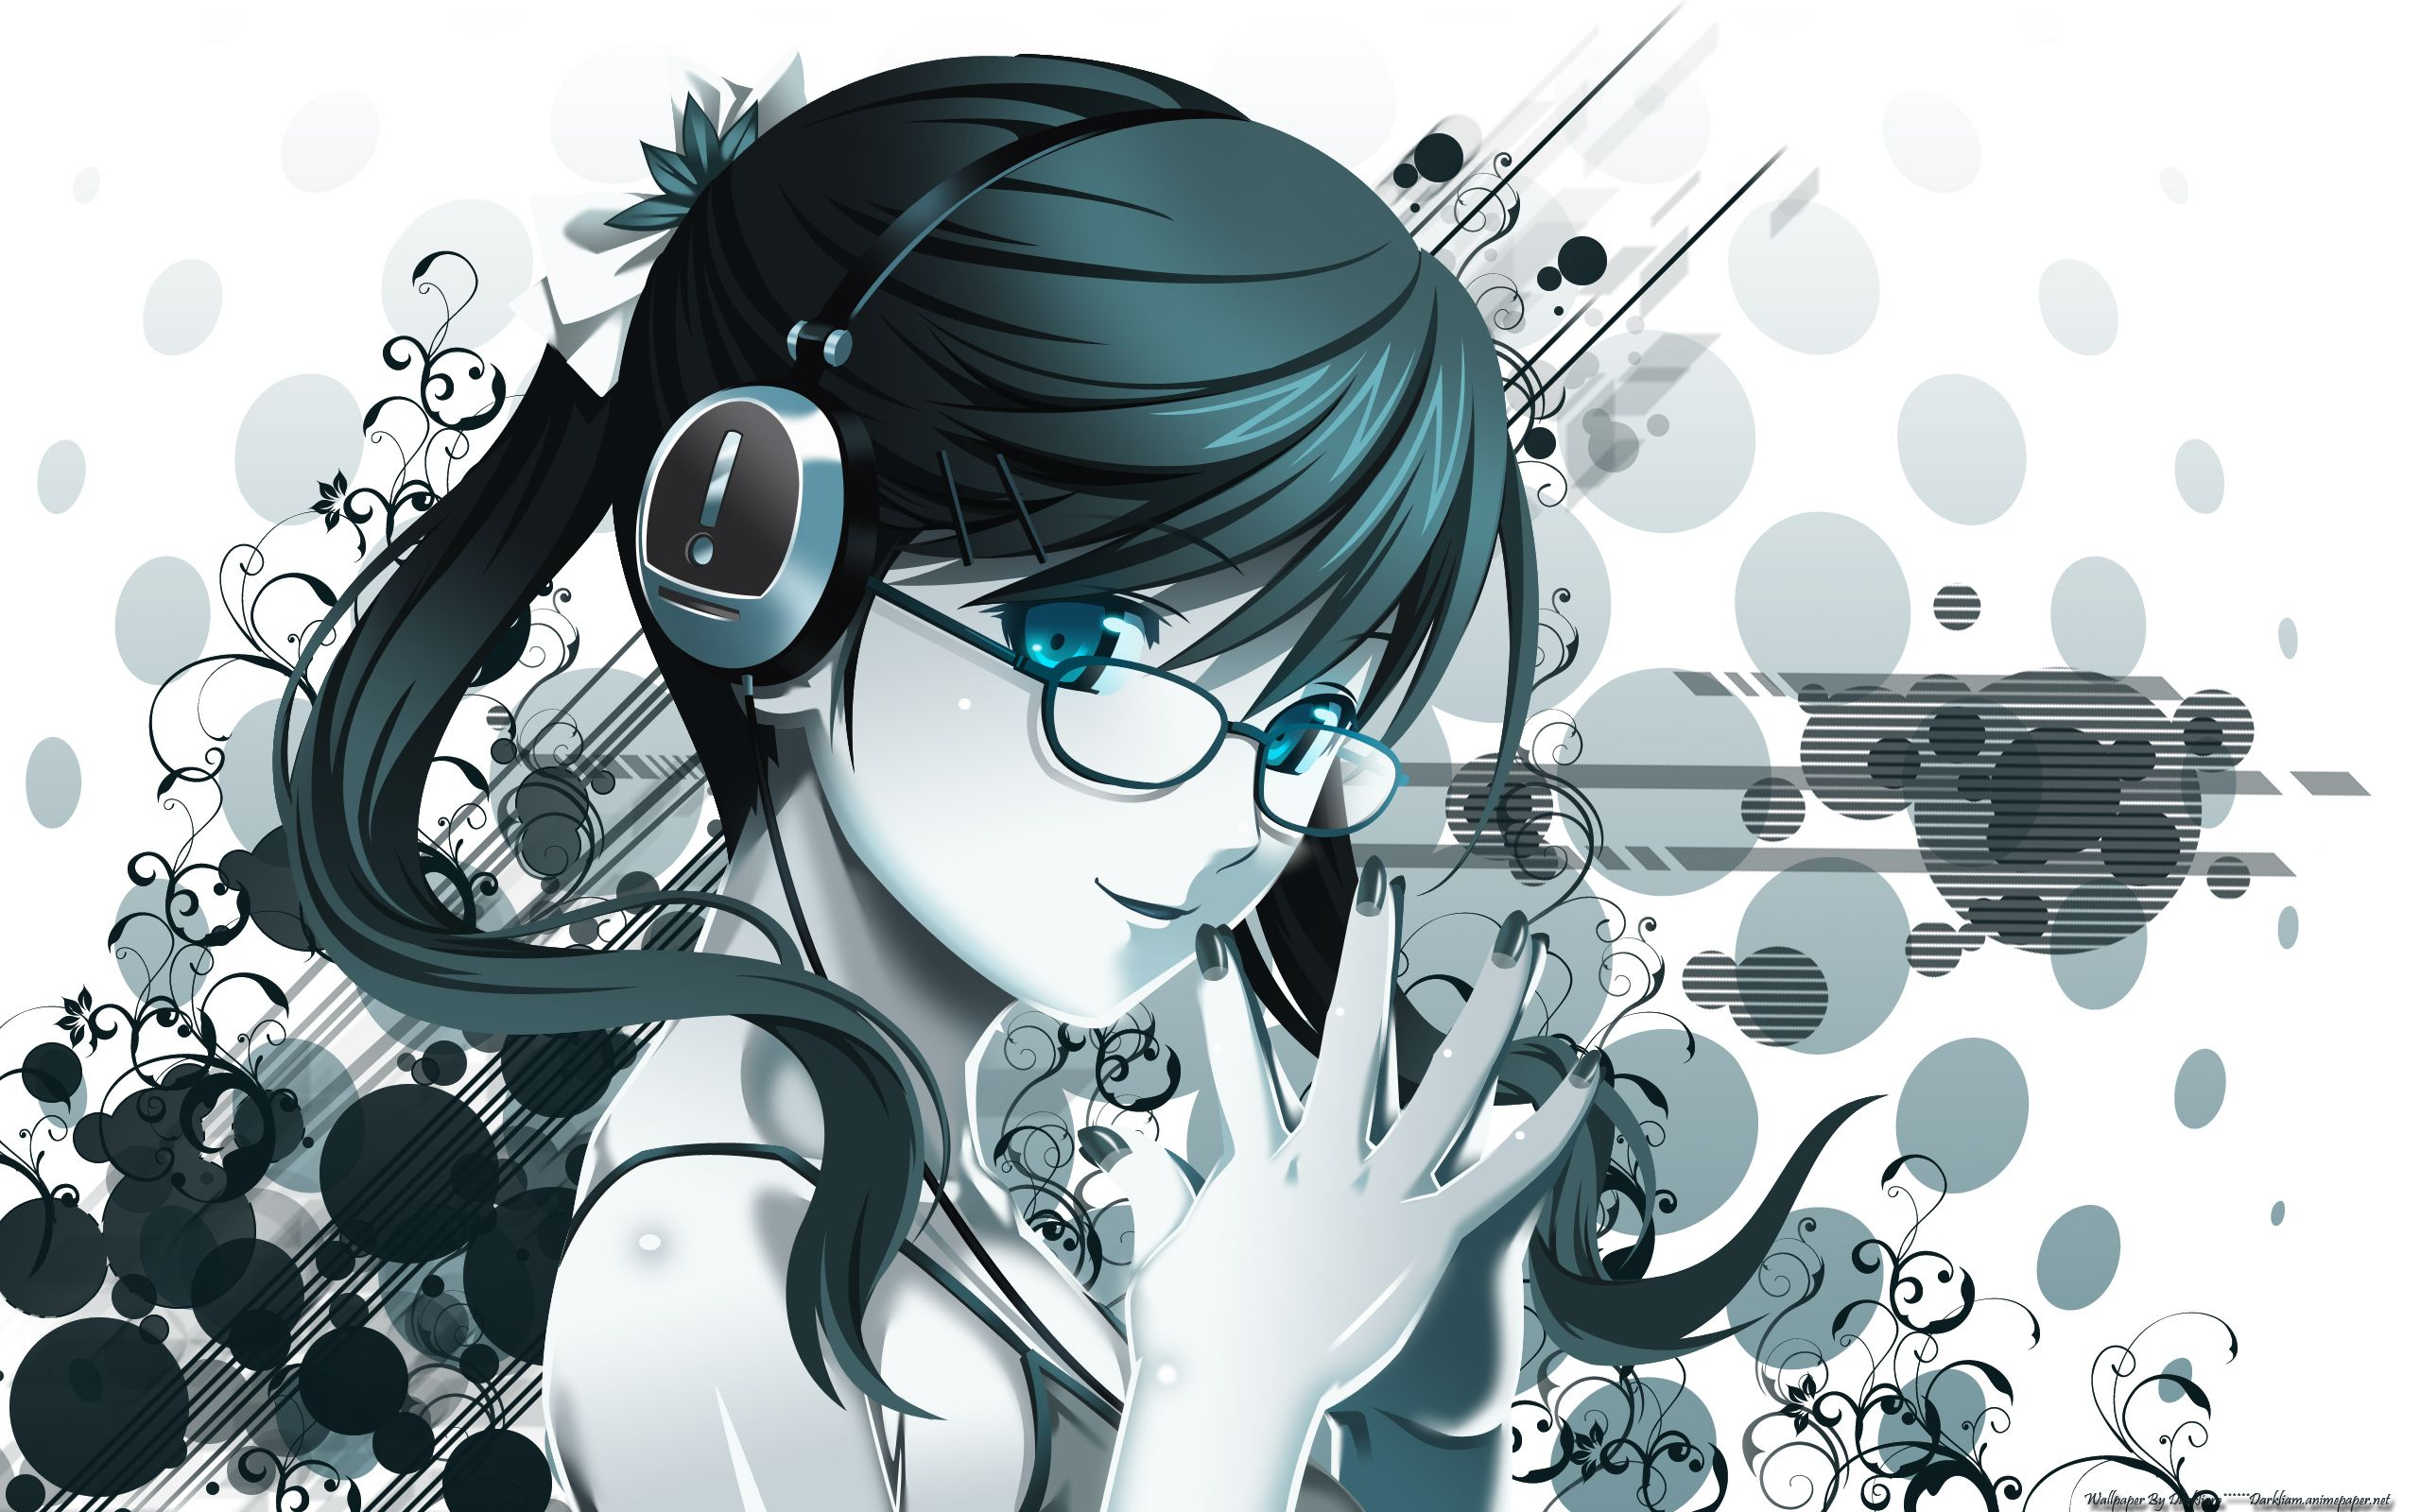 Anime Girl With Headphones Wallpapers Top Free Anime Girl With Headphones Backgrounds Wallpaperaccess